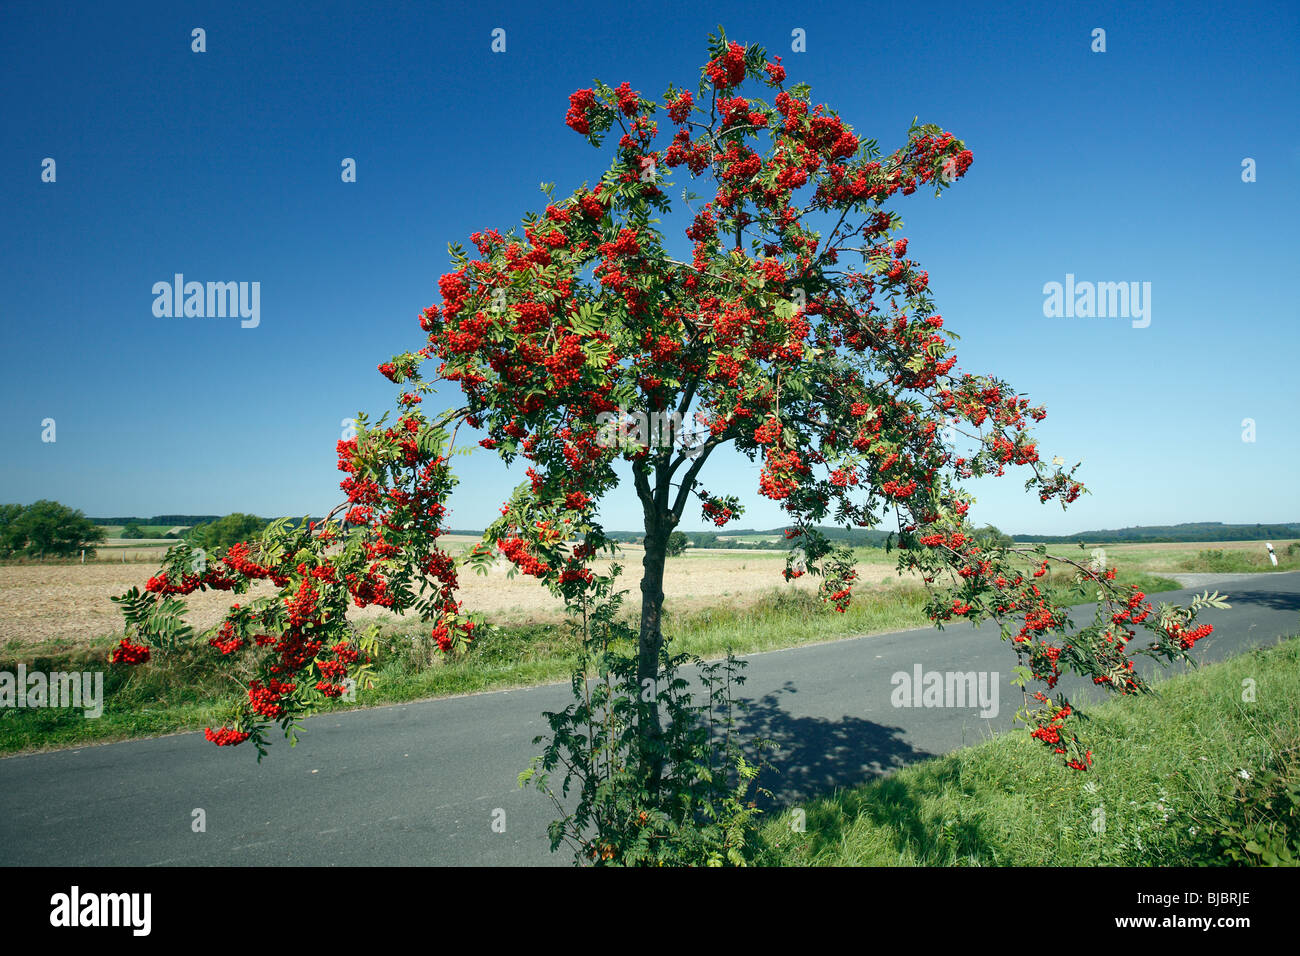 Mountain Ash / Rowan Tree (Sorbus aucuparia), with ripened berries, Germany - Stock Image